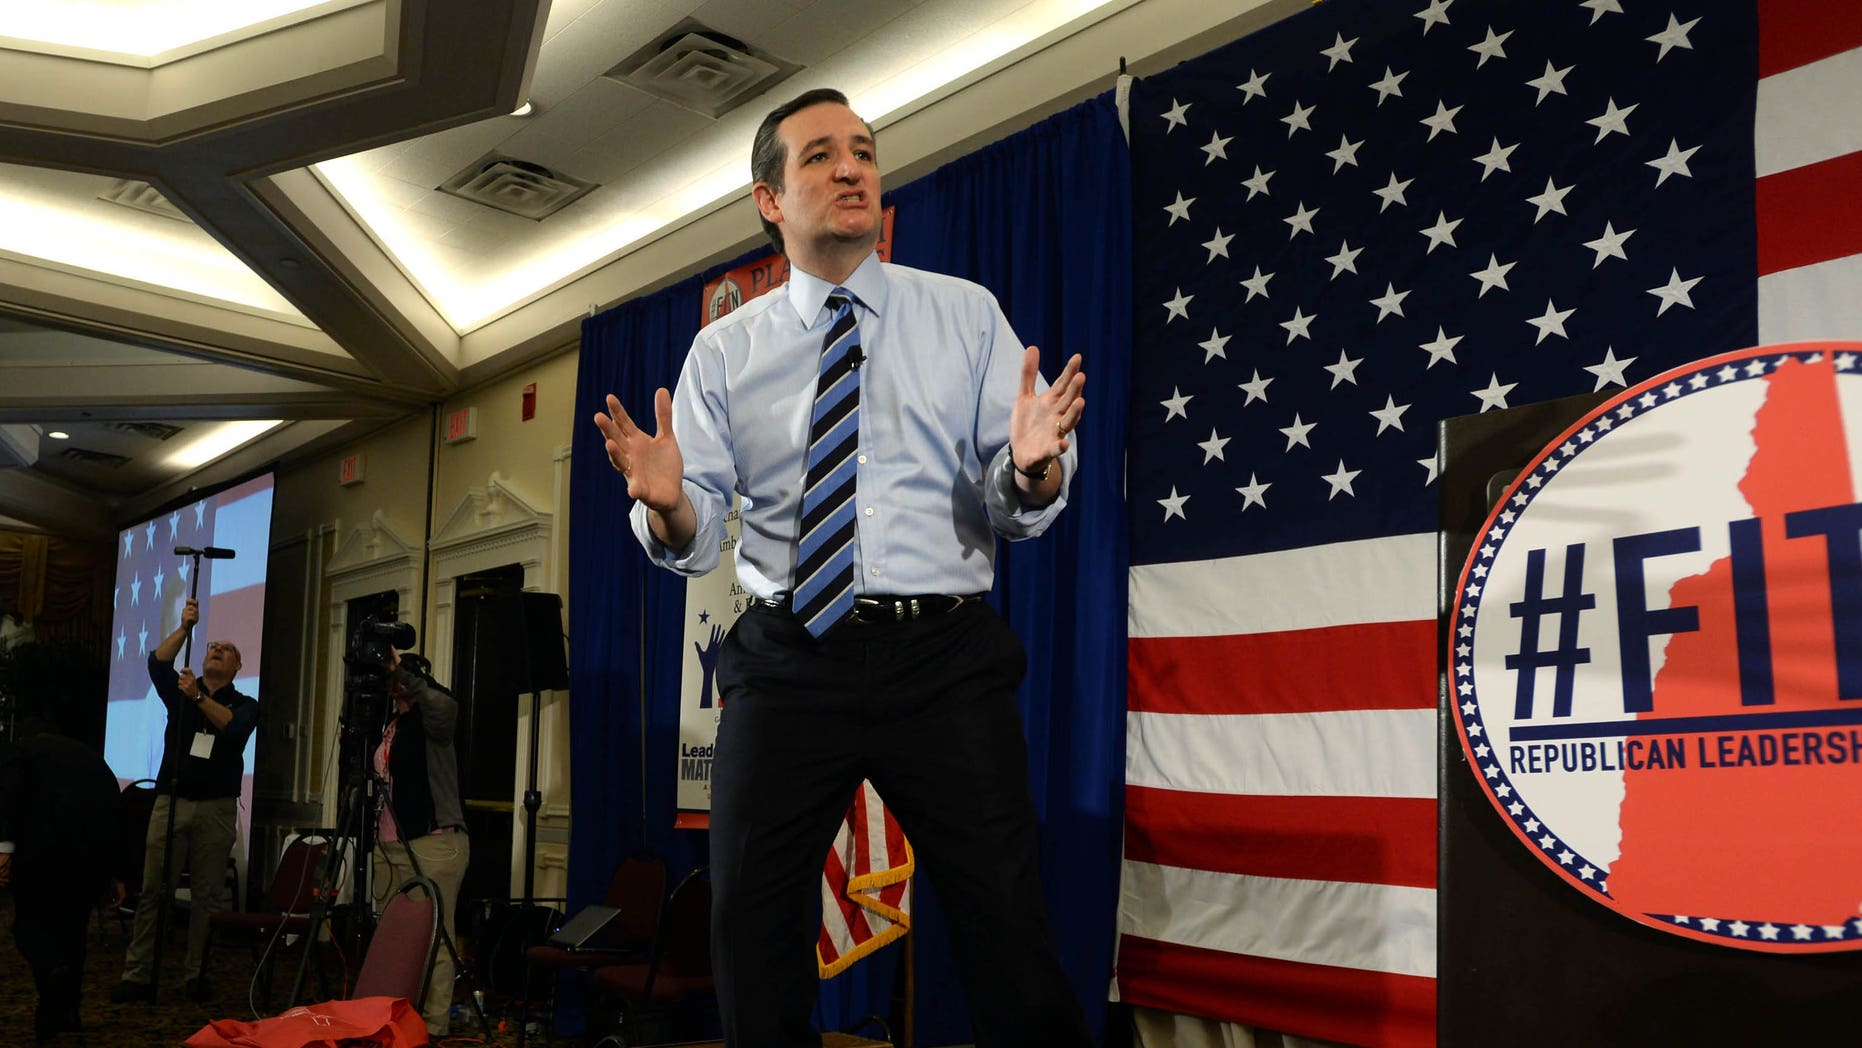 NASHUA, NH - APRIL 18: U.S. Sen. Ted Cruz (R-TX) speaks at the First in the Nation Republican Leadership Summit April 18, 2015 in Nashua, New Hampshire. The Summit  brought together local and national Republicans and was attended by all the Republicans candidates as well as those eyeing a run for the nomination. (Photo by Darren McCollester/Getty Images)